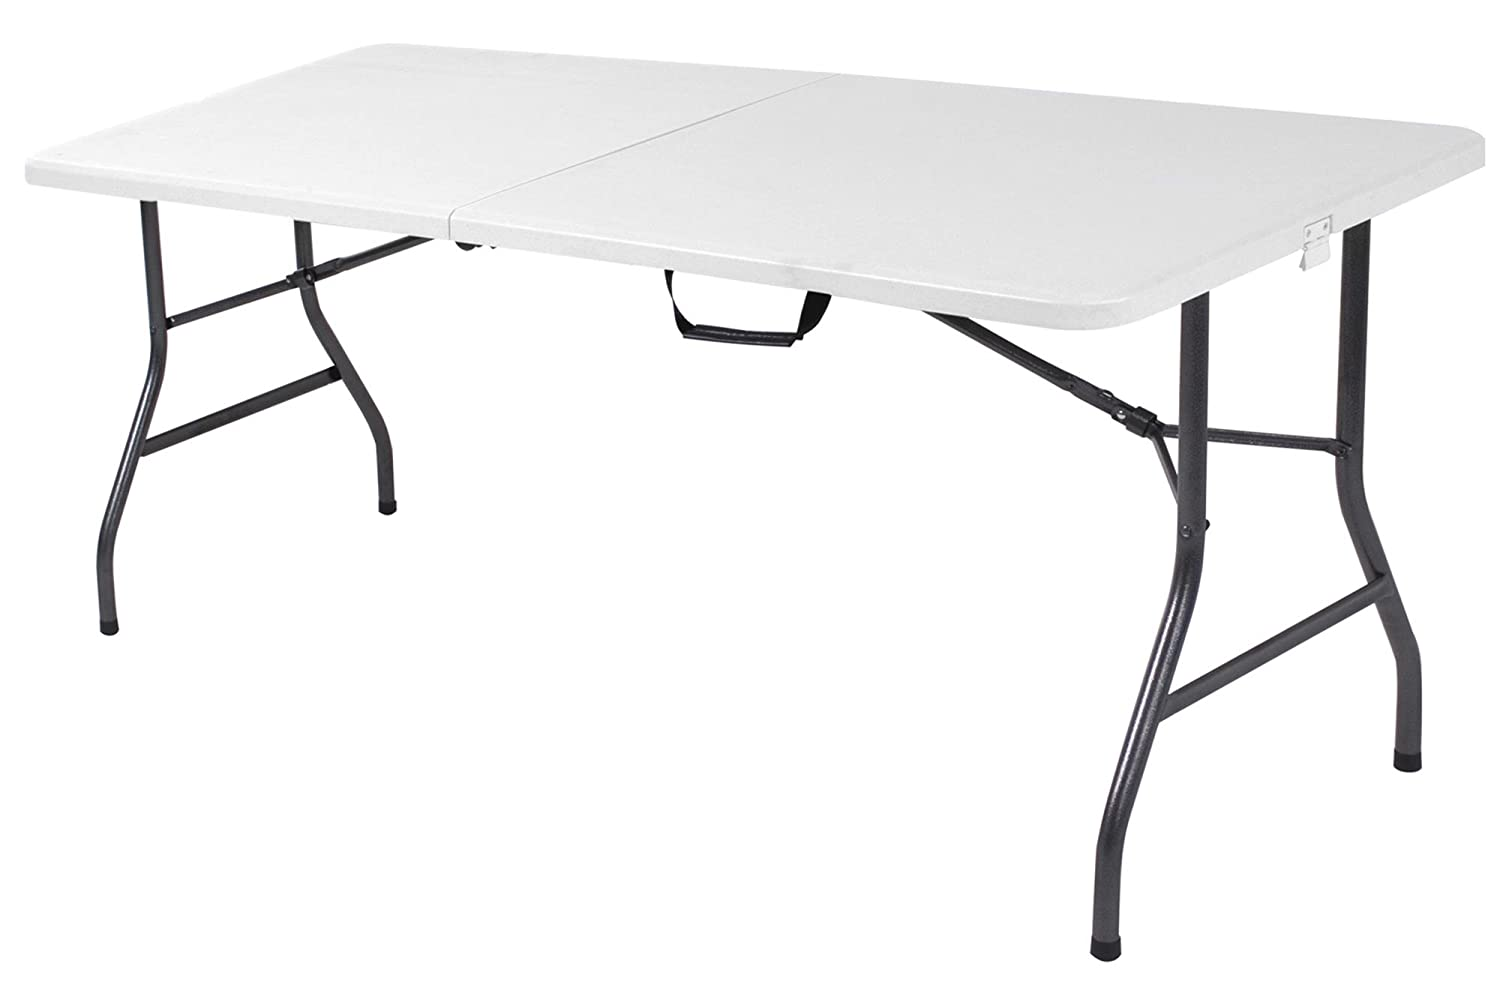 Cosco Deluxe 6 foot x 30 inch Fold-in-Half Blow Molded Folding Table, White Speckle